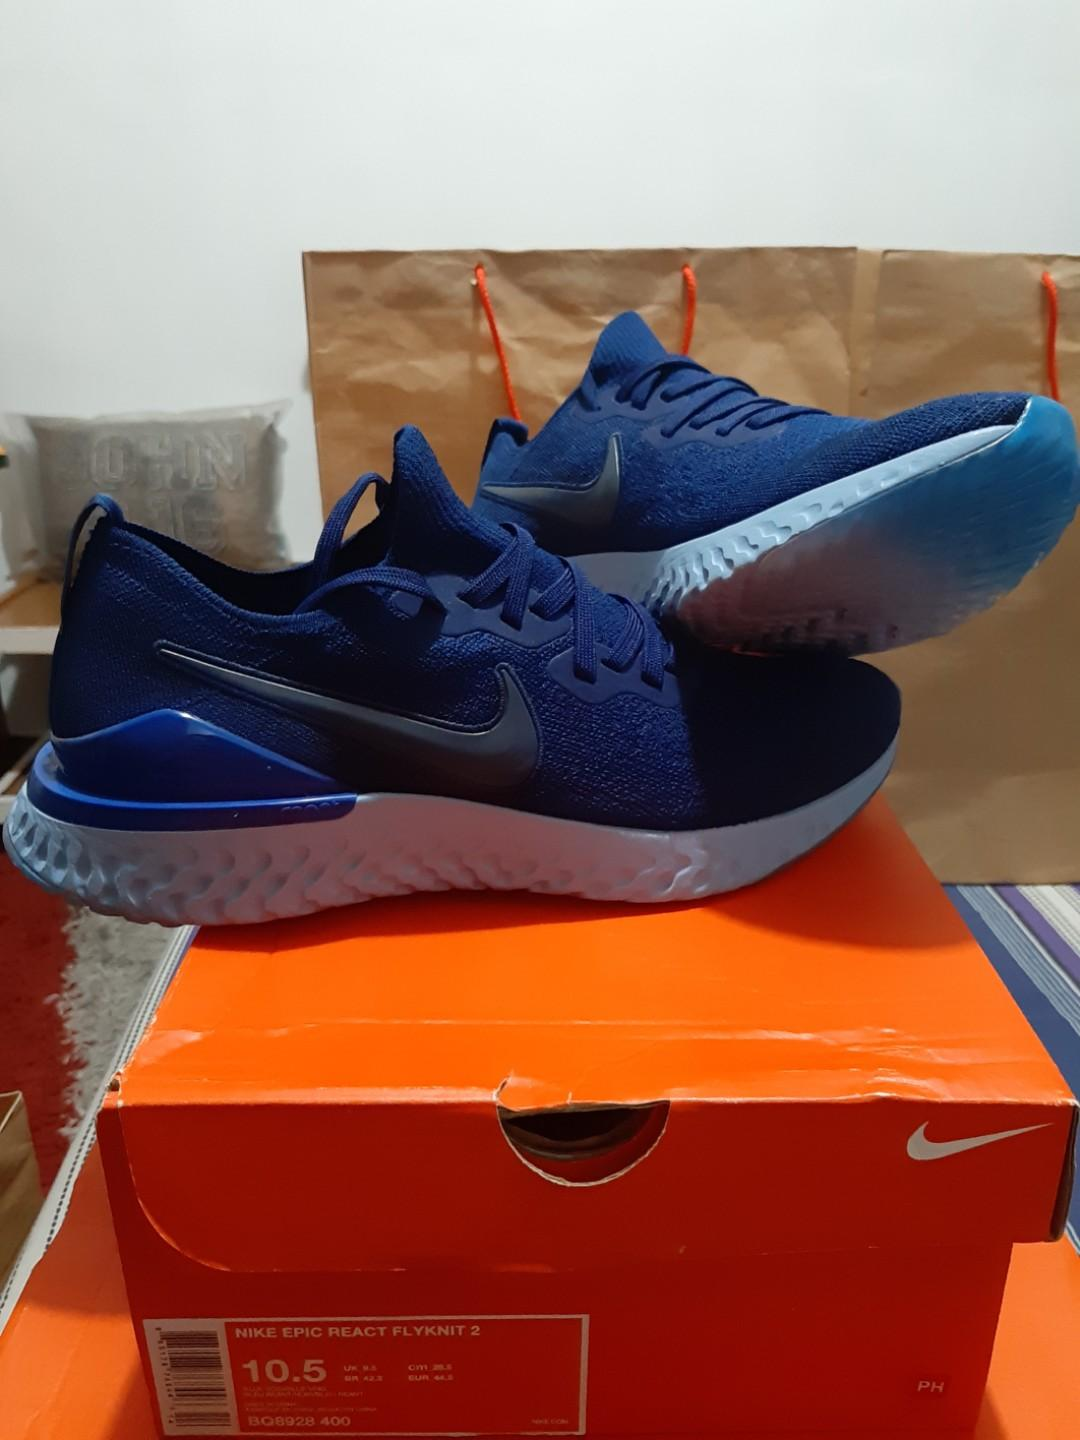 Nike Epic React Flyknit 2 photo